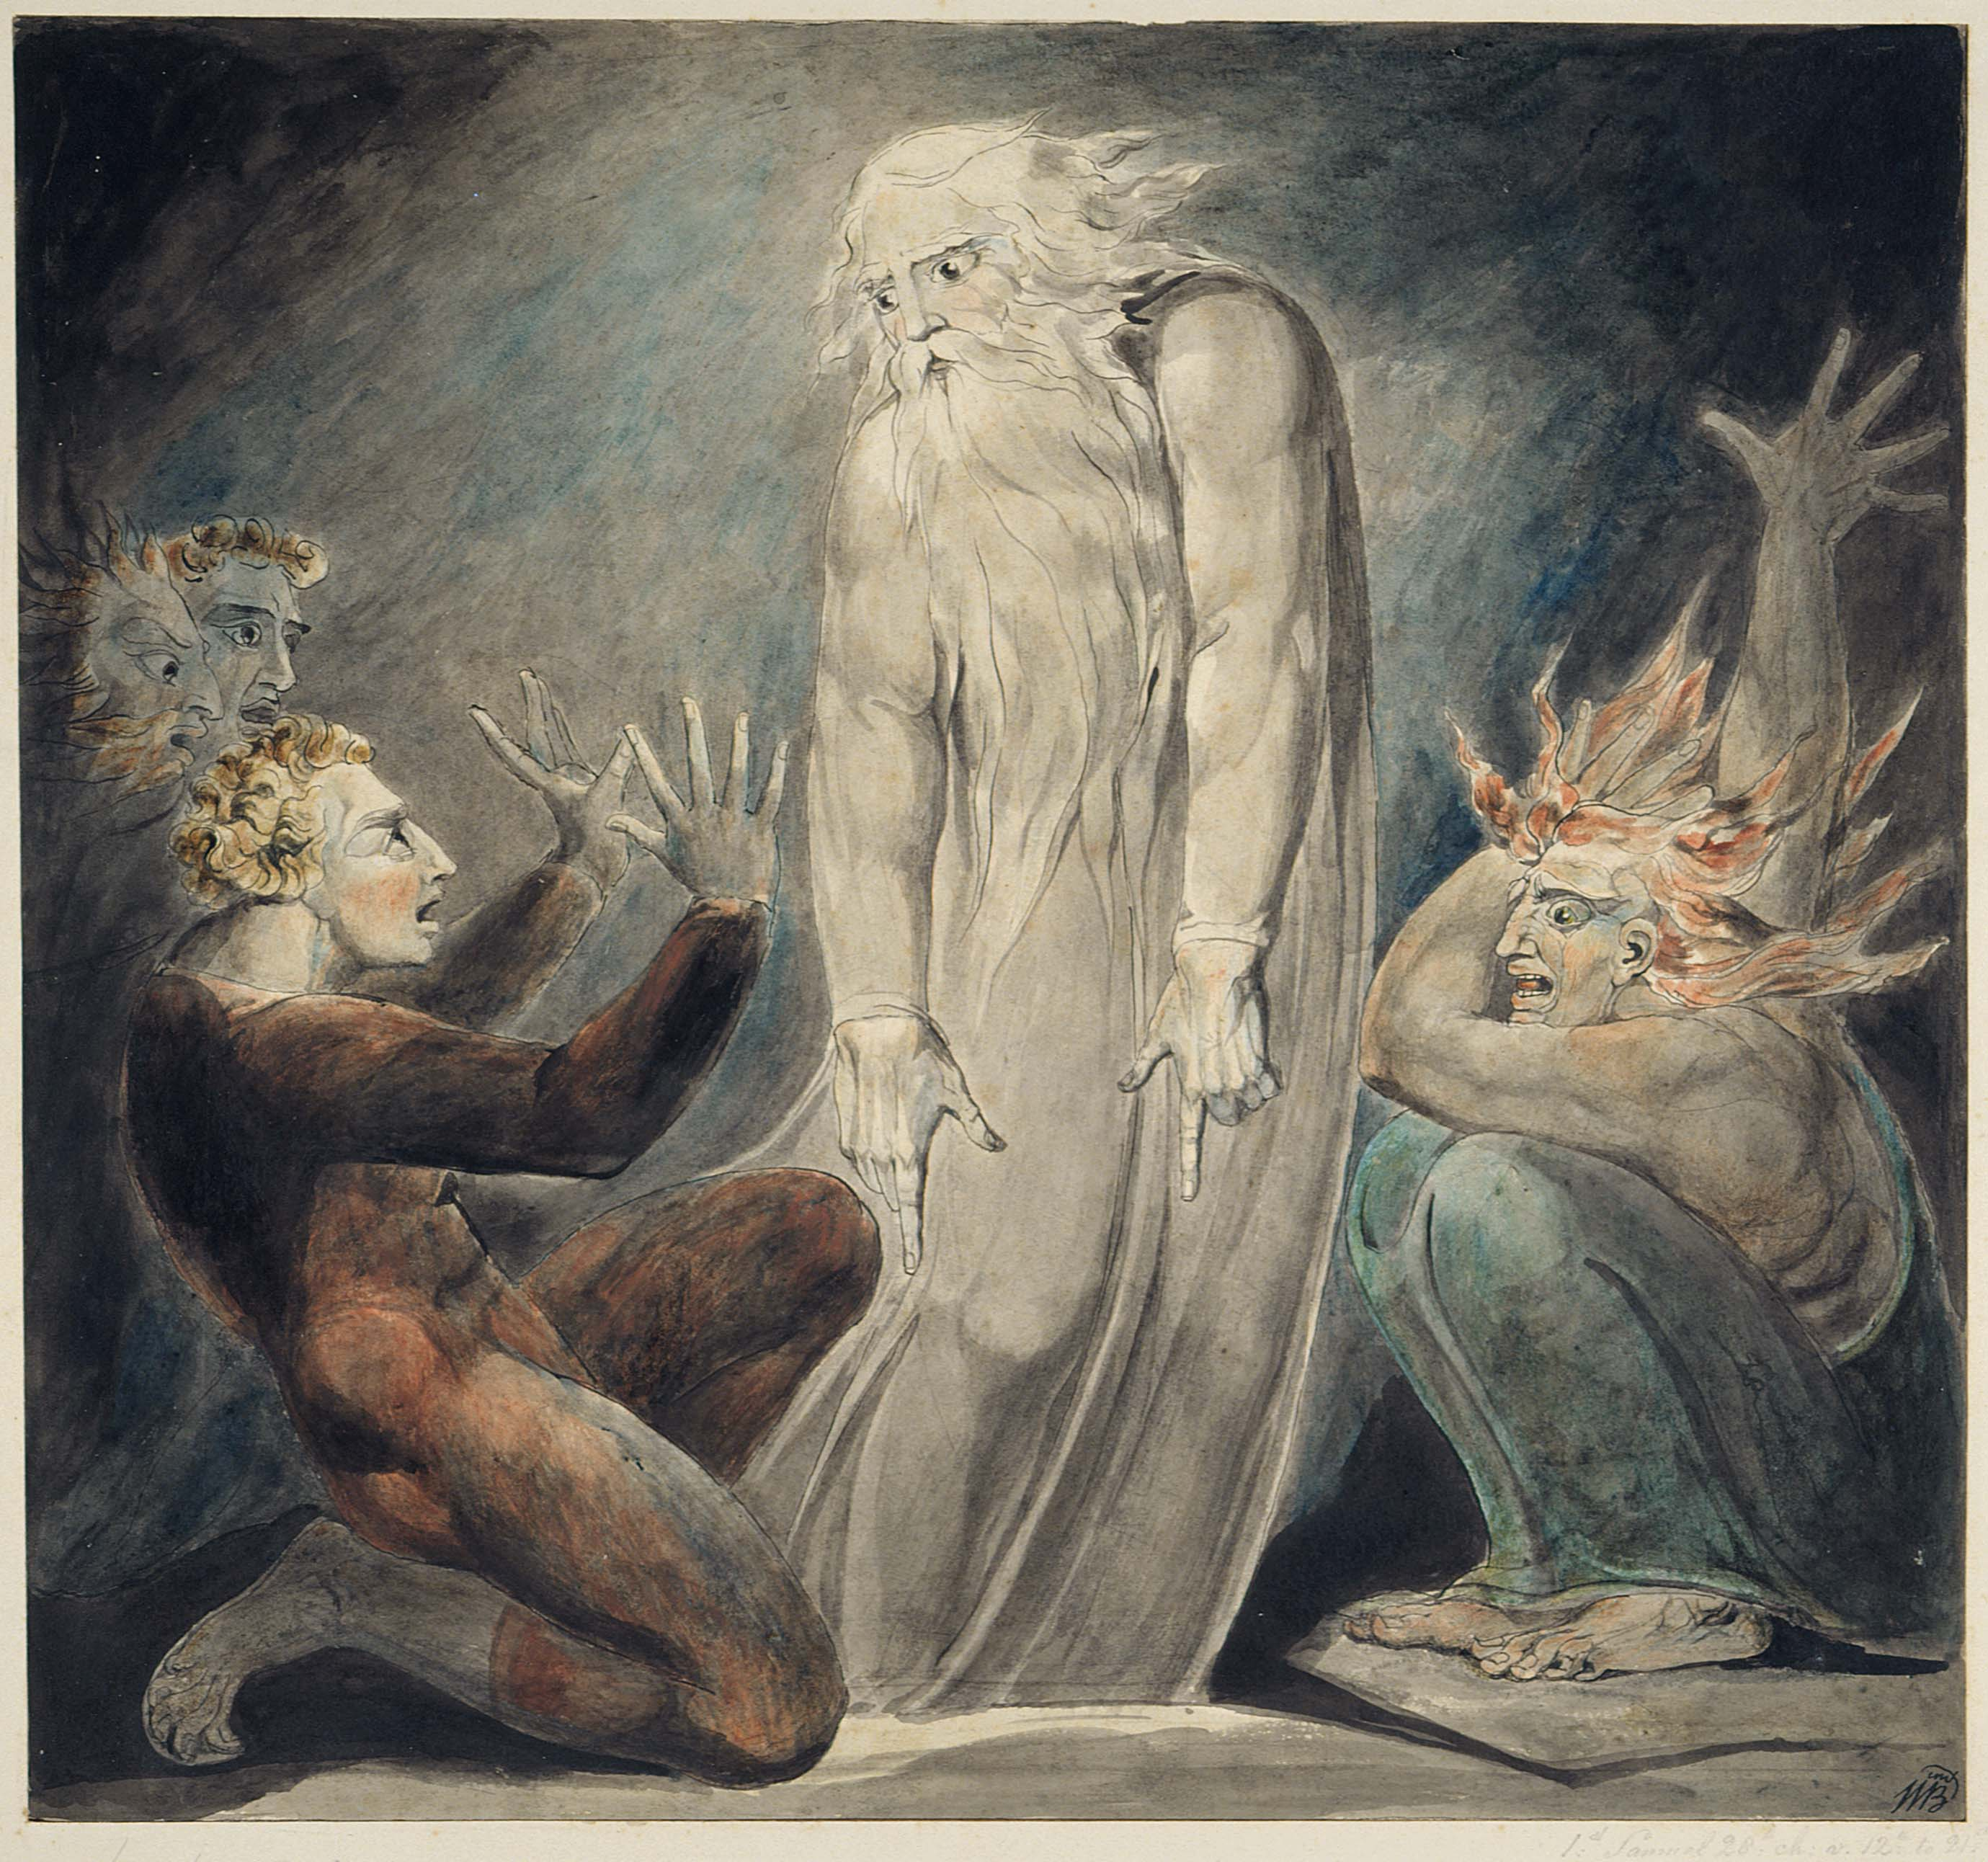 Wall Art Credence Martin Butlin The Paintings And Drawings Of William Blake